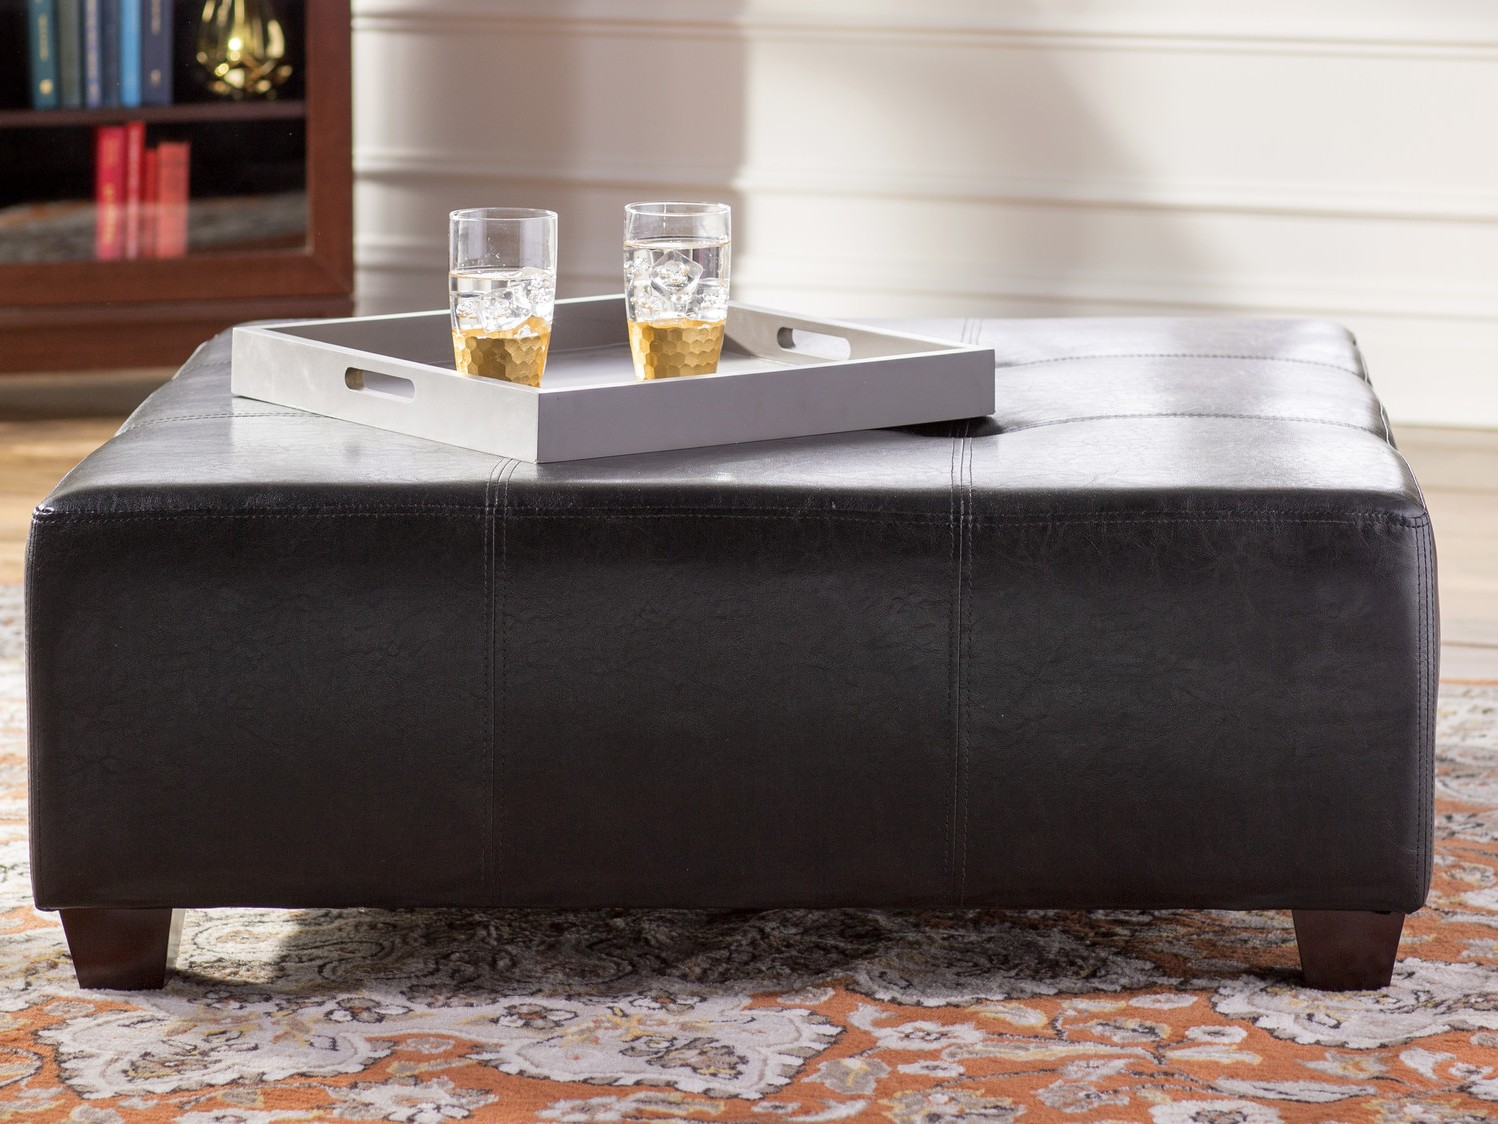 The Astounding Photo Below Is Other Parts Of Tufted Ottoman Coffee Table Content Which Igned Within Unique And Posted At Февраль 5th 2016 19 36 18